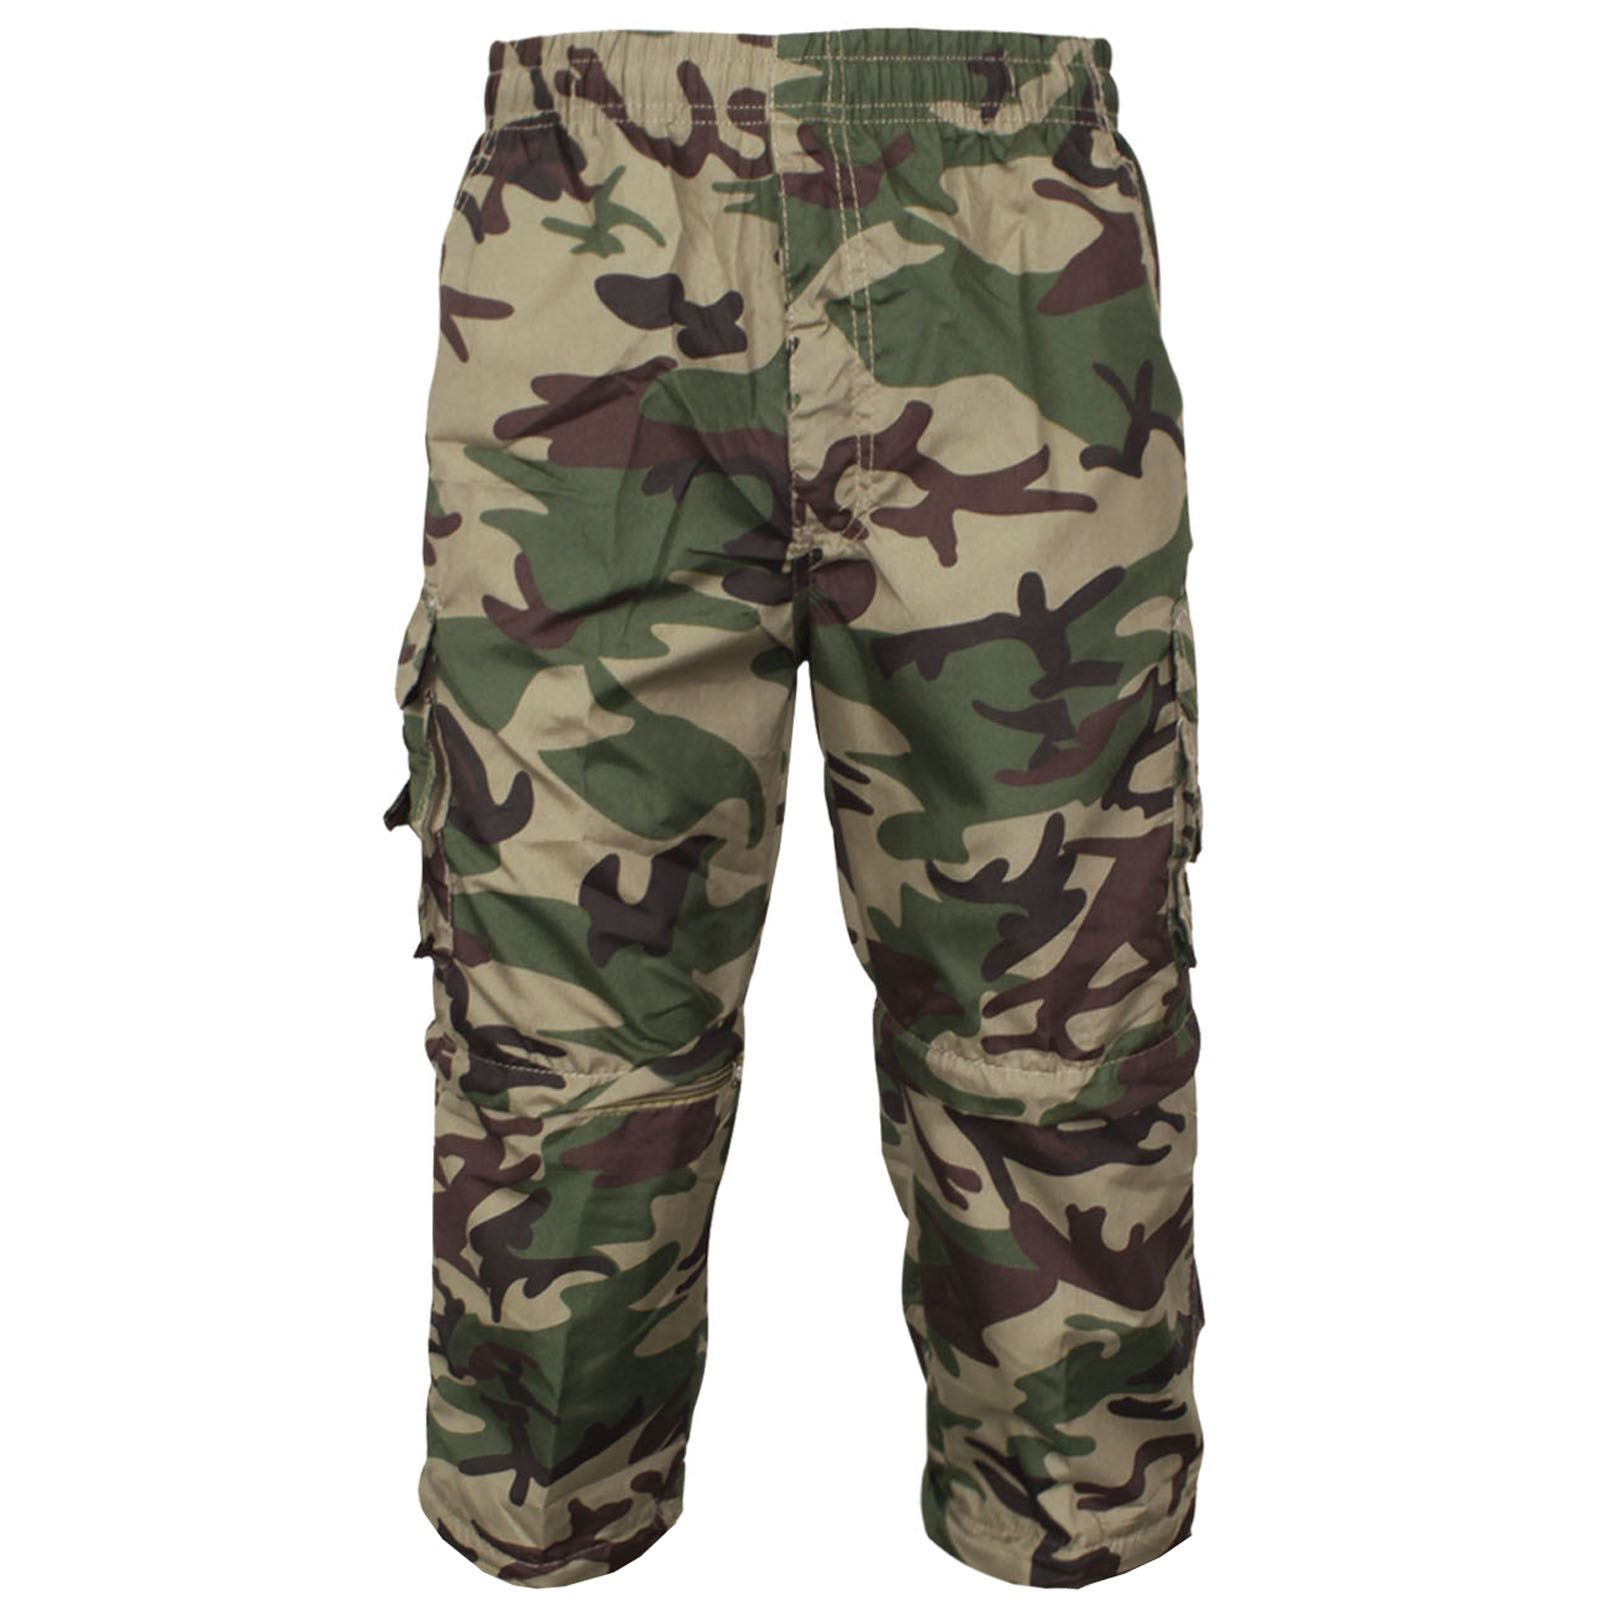 MENS-2-IN-1-CAMOUFLAGE-SHORTS-ARMY-ZIP-OFF-COMBAT-CARGO-TROUSERS-WORK-PANT-S-2XL thumbnail 3